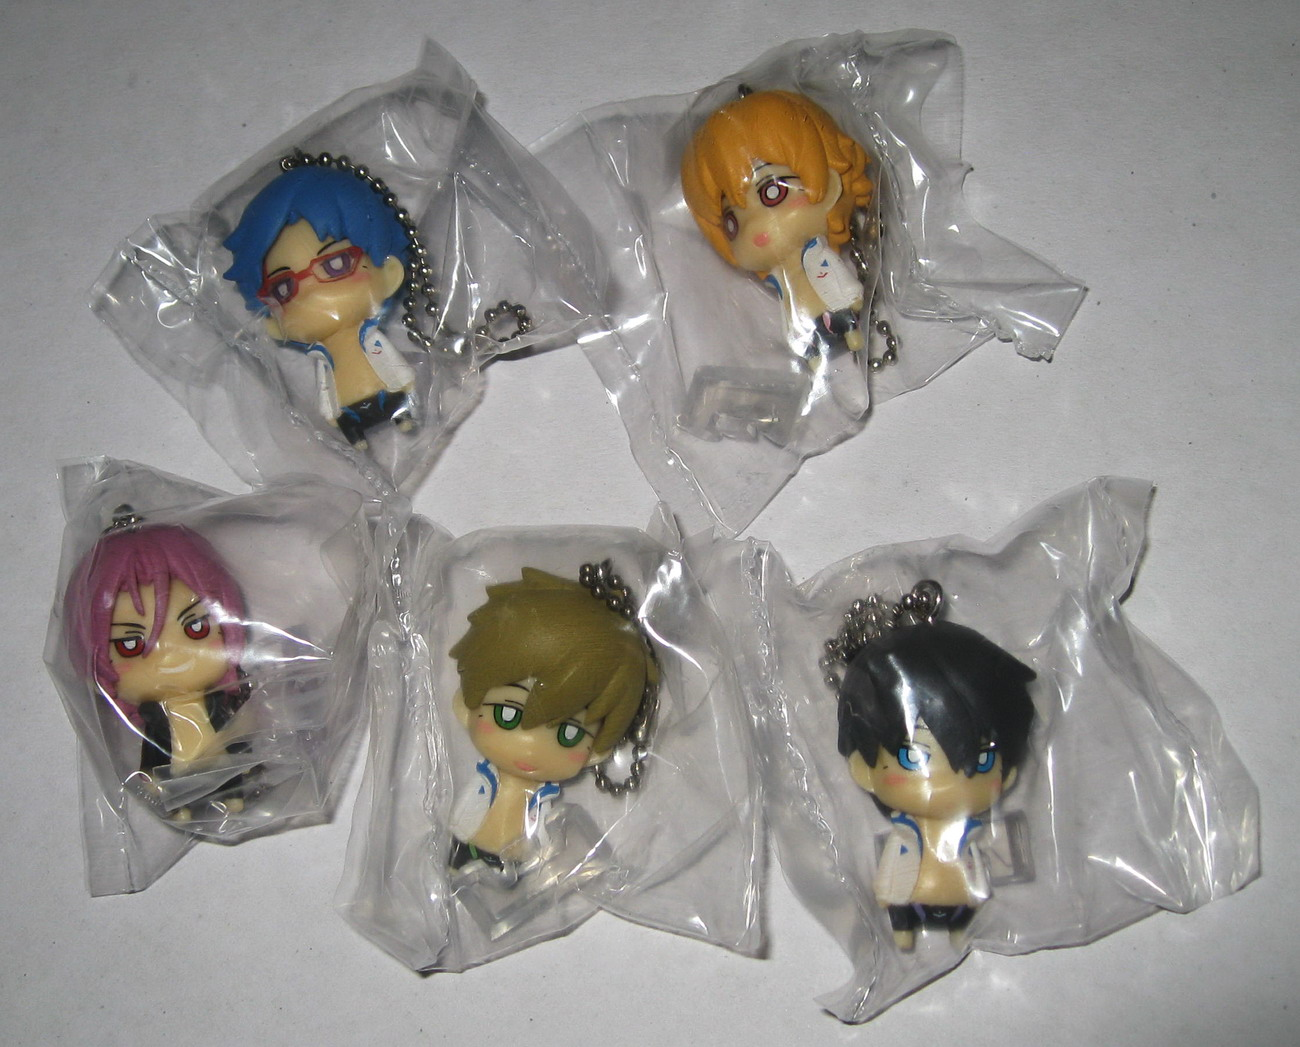 Free! Deformed Figure collection